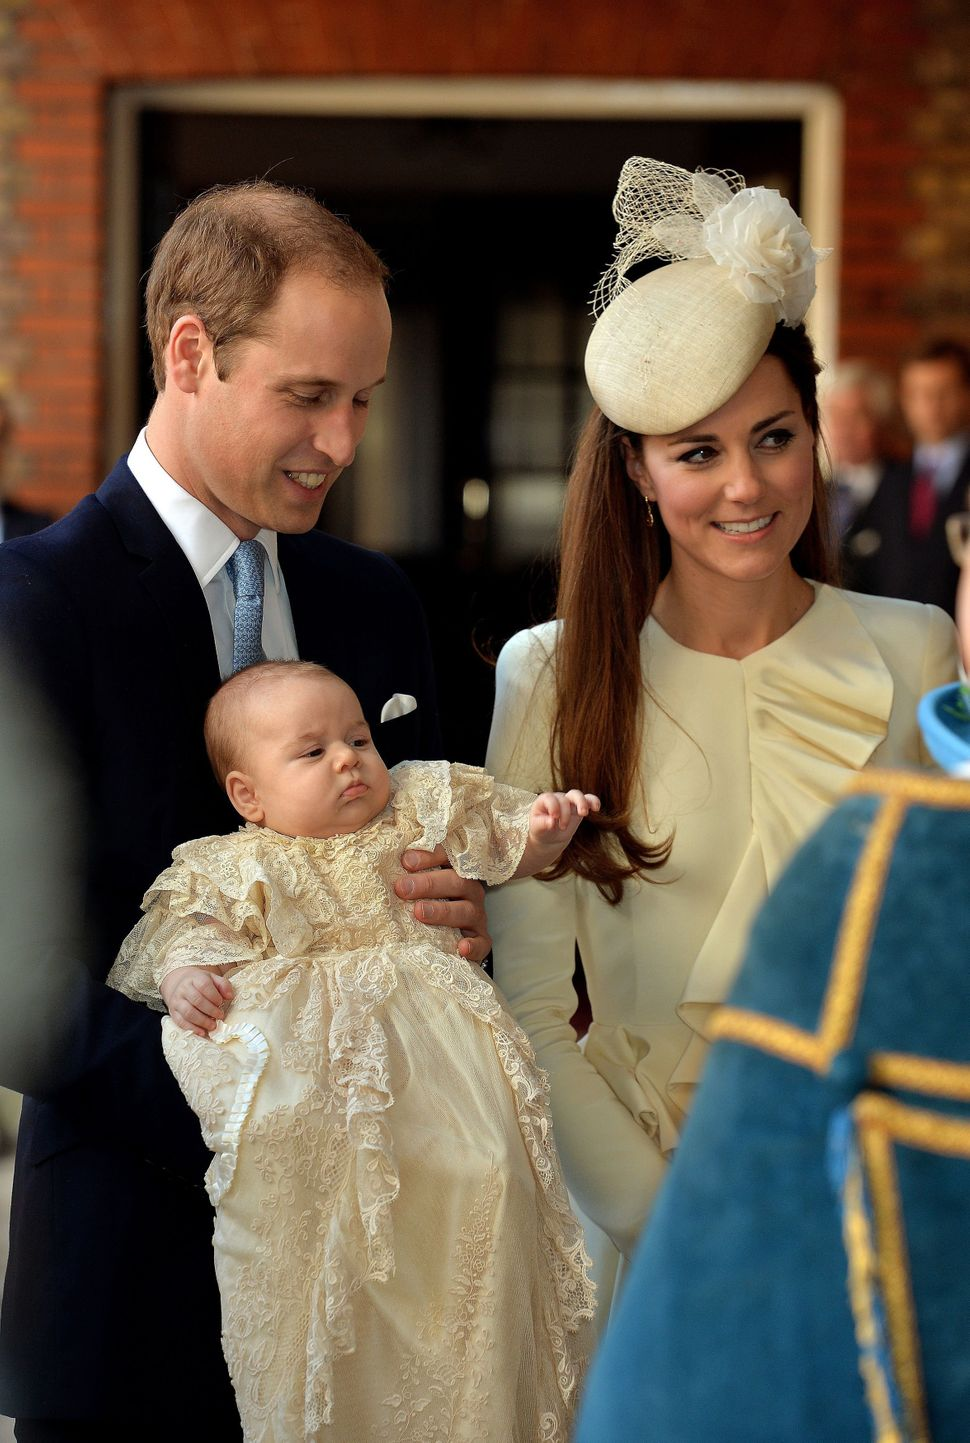 Prince William and Kate Middleton arrive with their son Prince George of Cambridge at Chapel Royal in St James's Palace, ahea